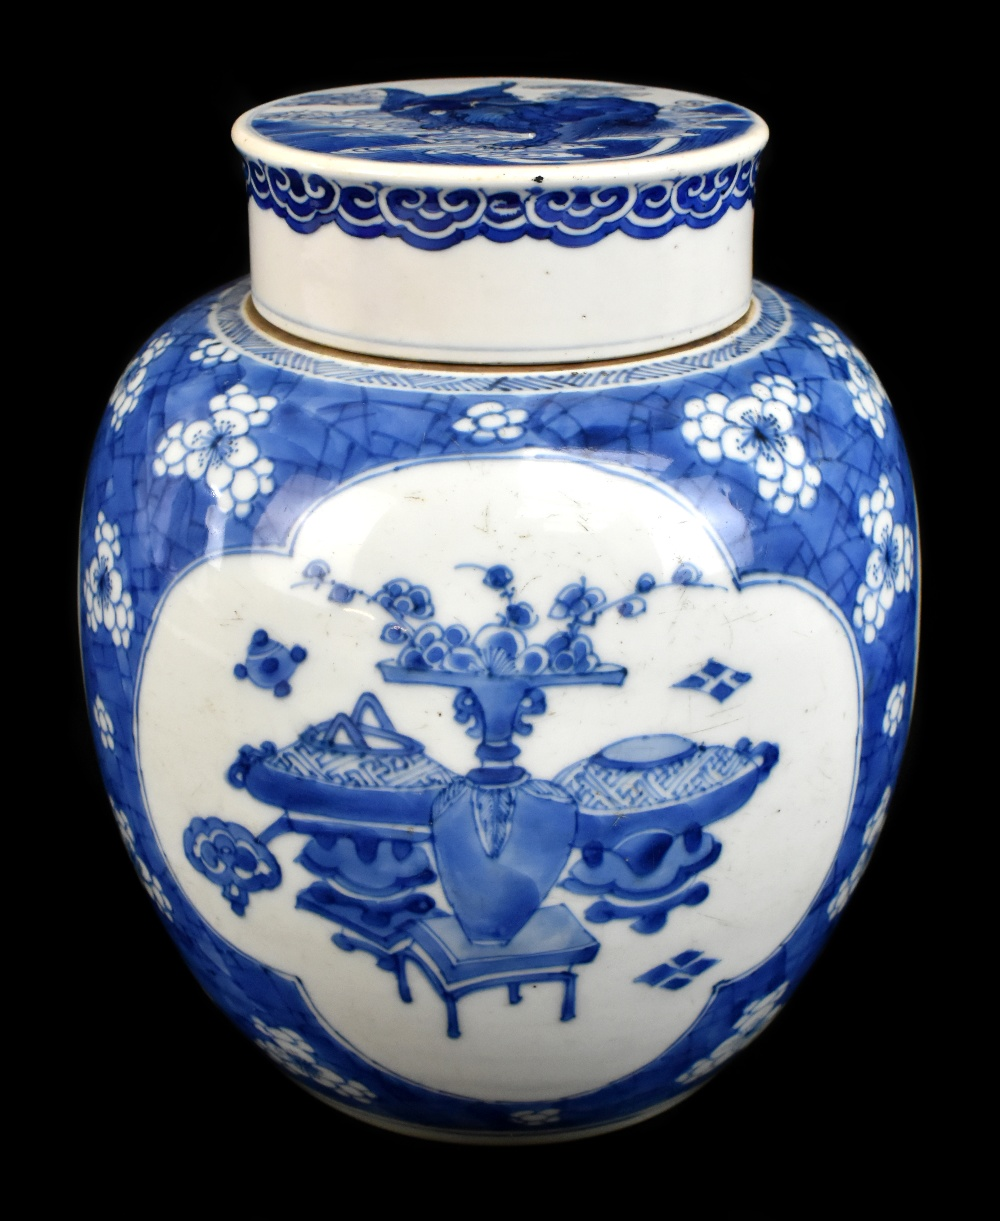 A late 19th century Chinese blue and white ginger jar and cover, the cover painted with a shishi